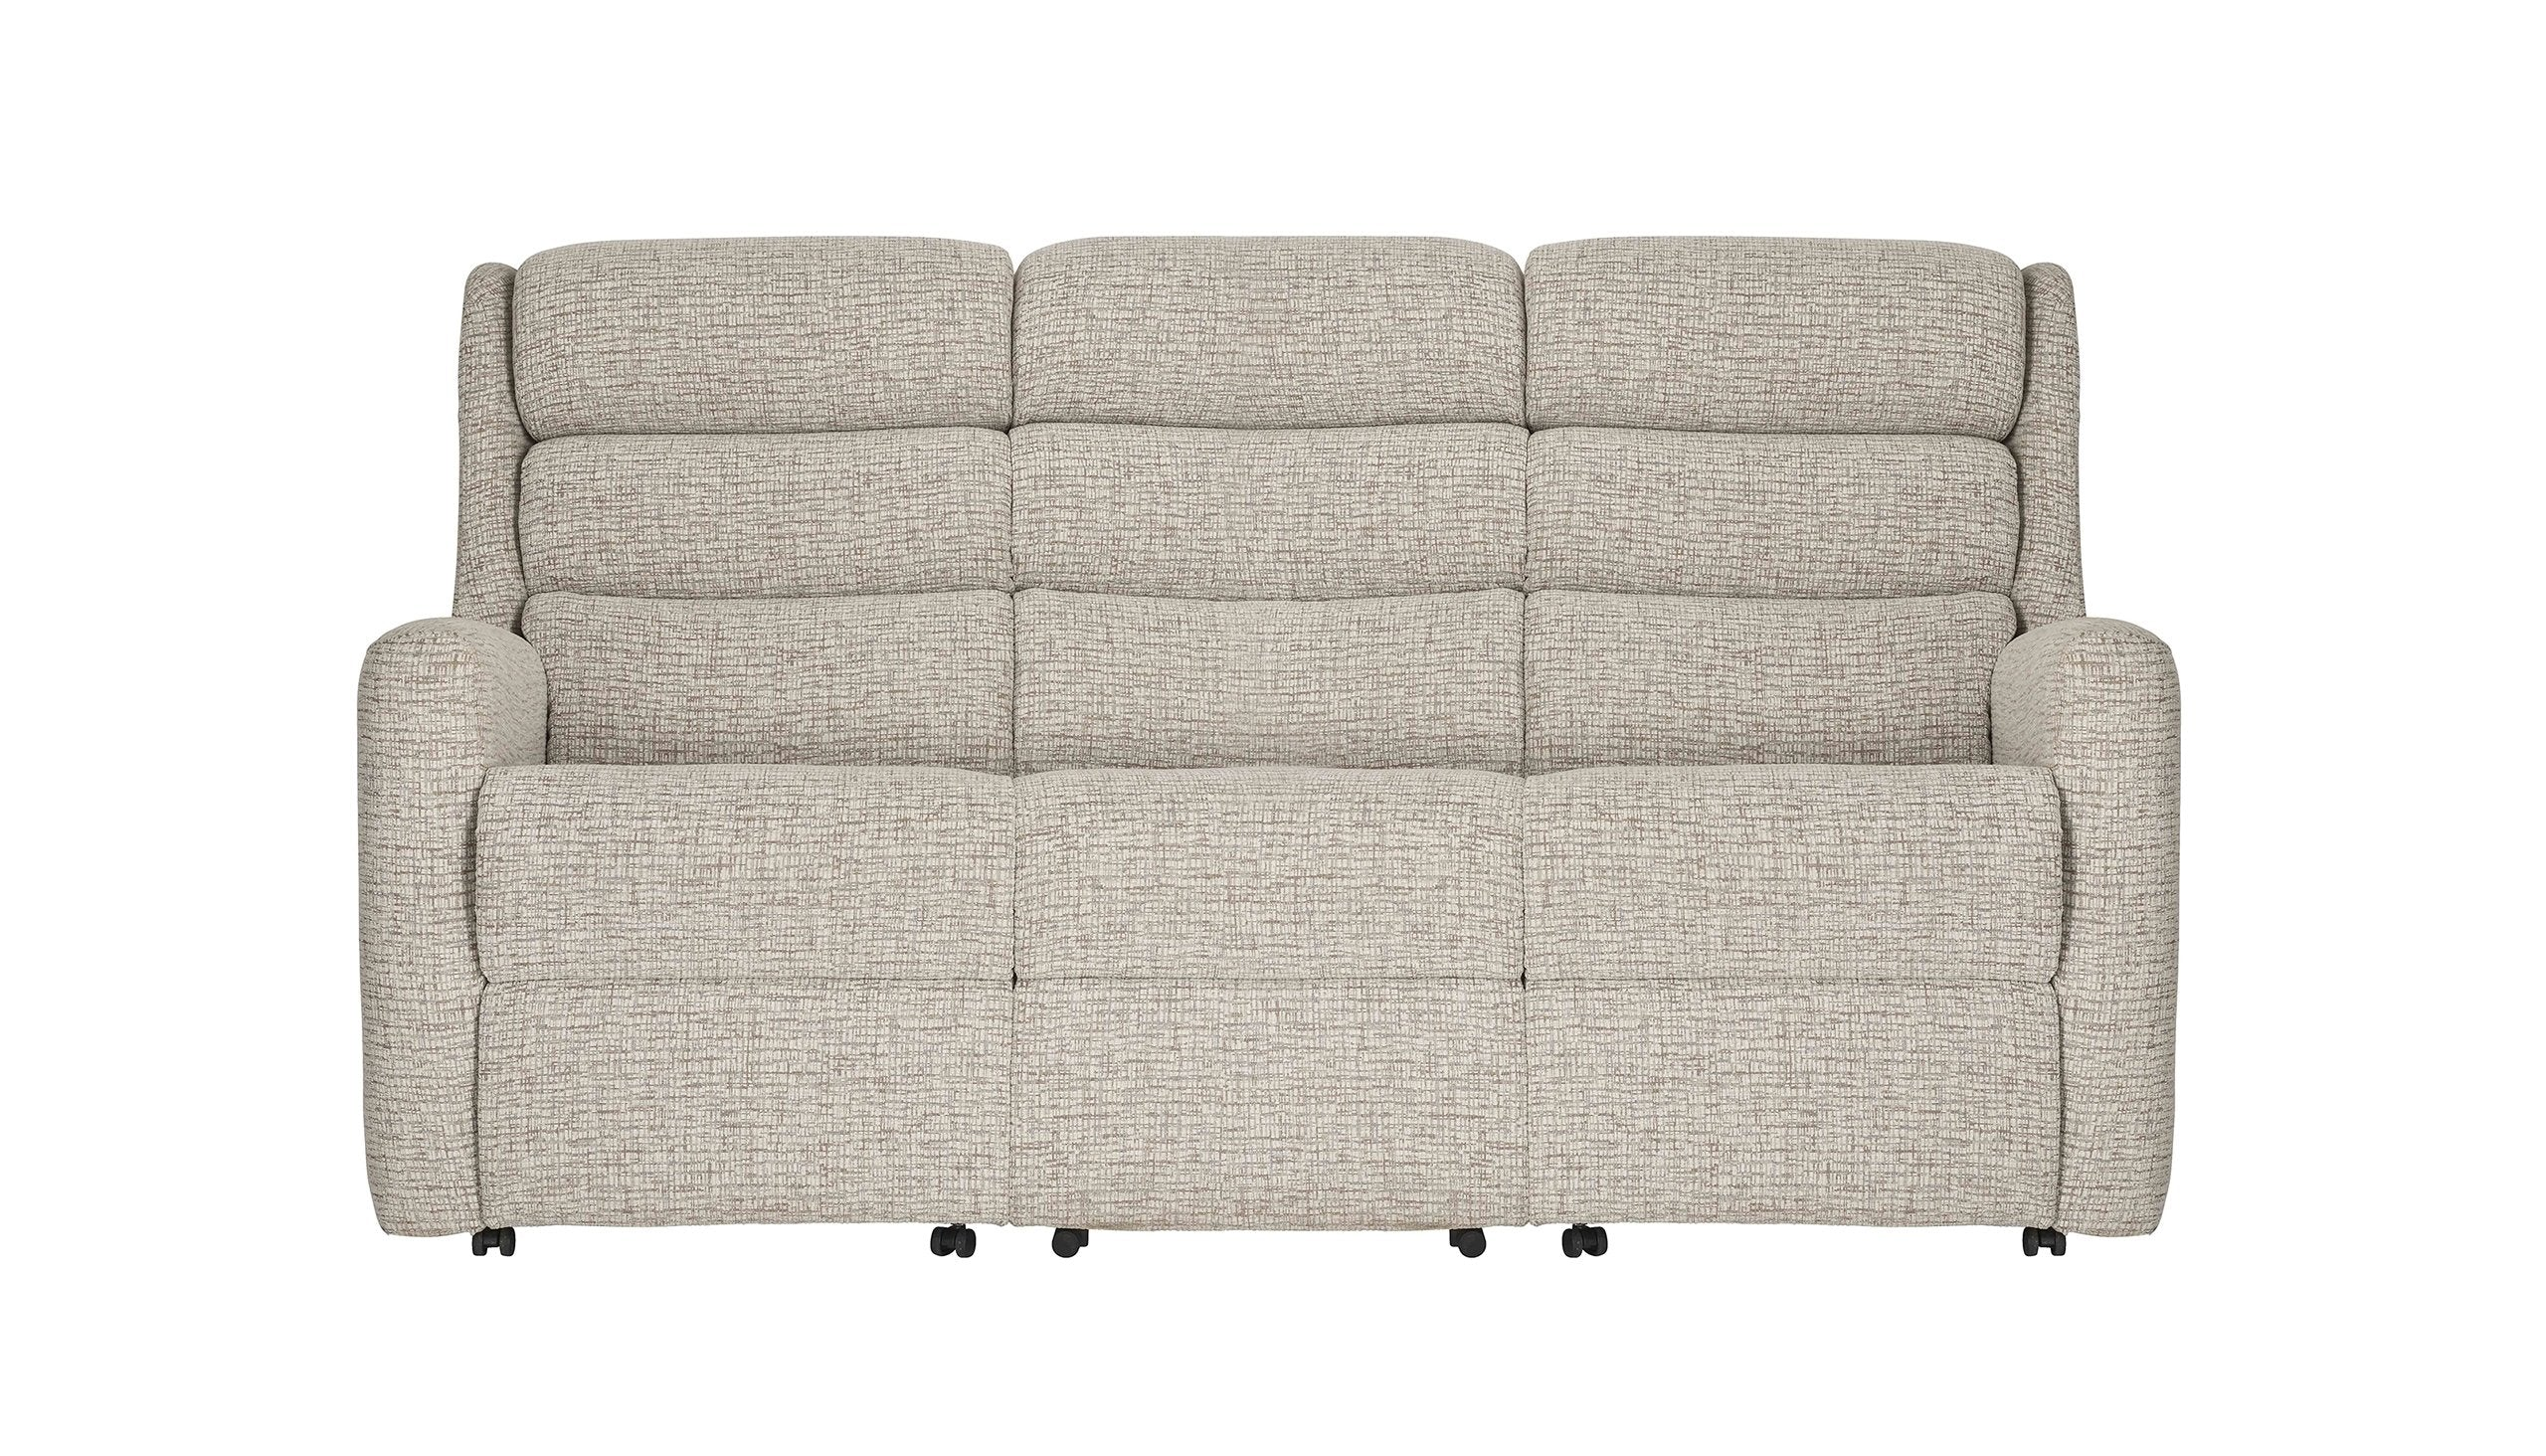 Celebrity Somersby 3 Seater Recliner Sofa - AHF Furniture & Carpets